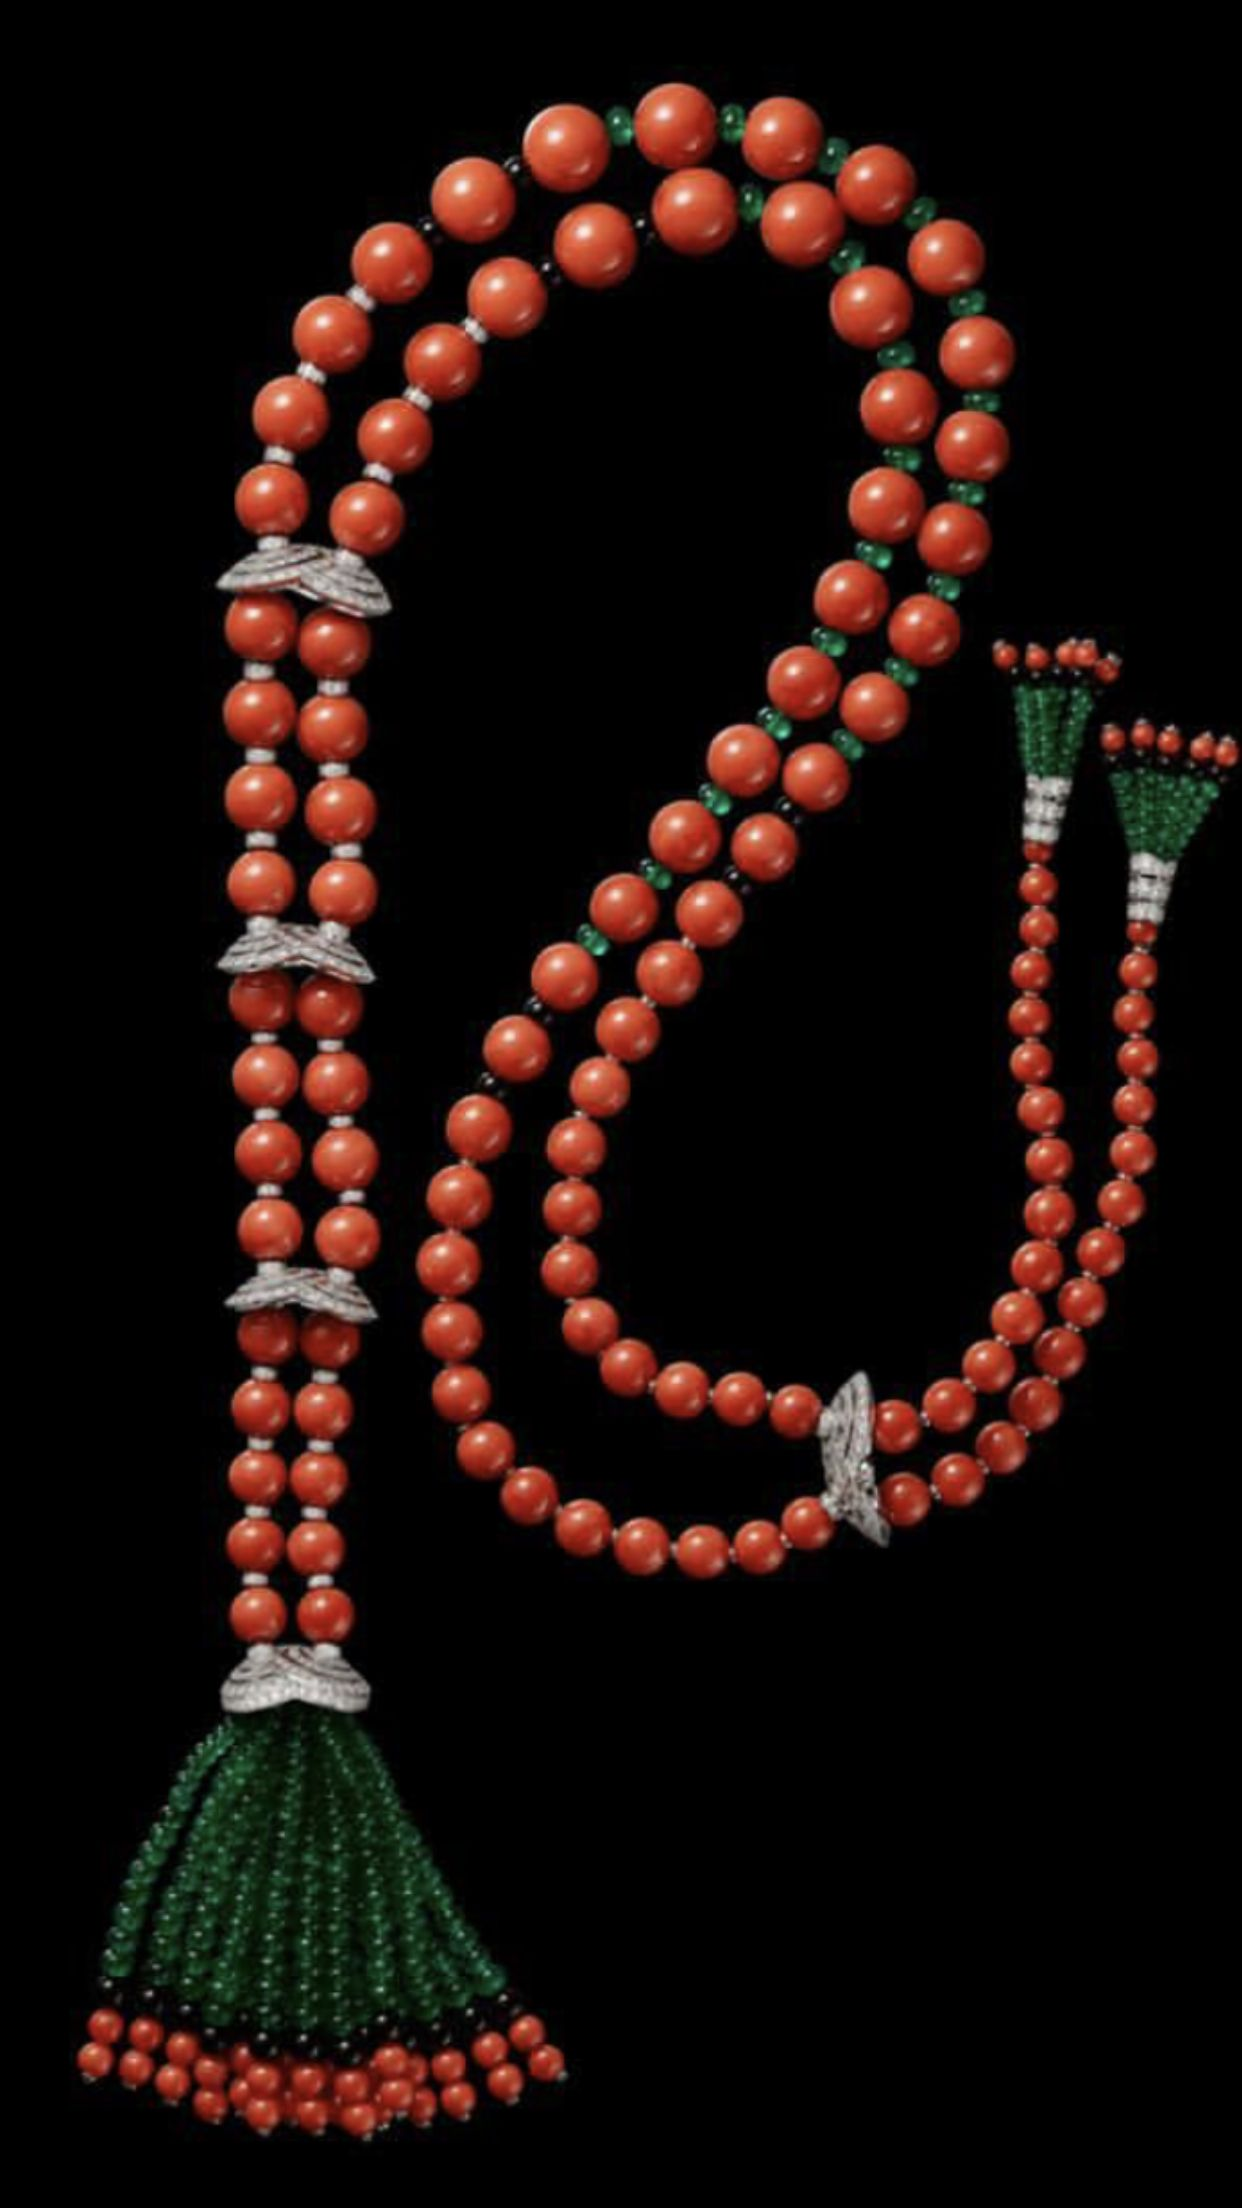 Pin By Marie Chonko On Diamond Necklaces Colour Stone Perls Jewellery Beautiful Necklaces Coral Jewelry Timeless Jewelry